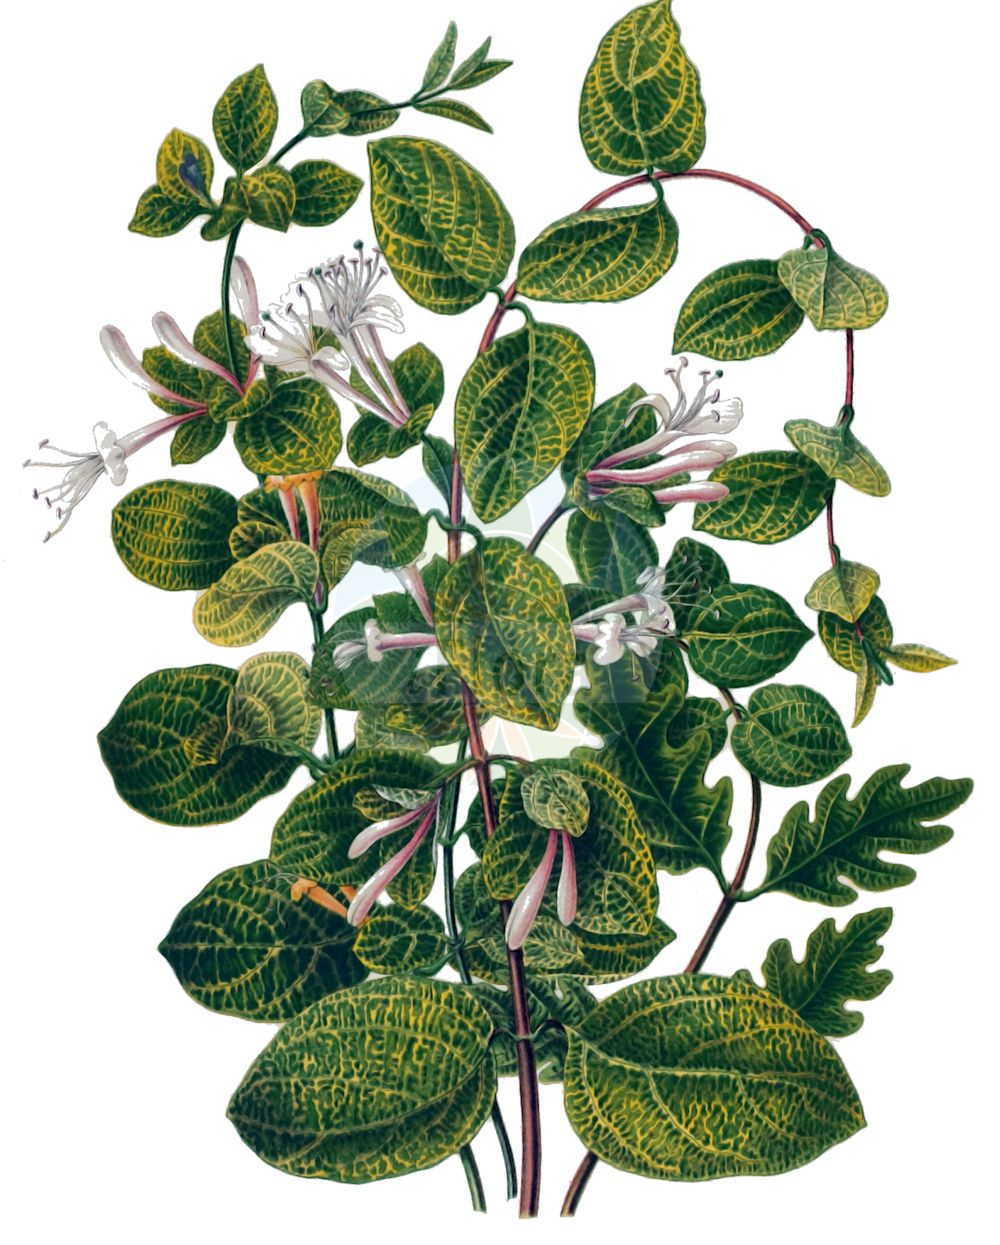 Historische Abbildung von Lonicera japonica. Das Bild zeigt Blatt, Bluete, Frucht und Same. ---- Historical Drawing of Lonicera japonica.The image is showing leaf, flower, fruit and seed.(Lonicera japonica,Lonicera japonica,Lonicera,Heckenkirsche,Honeysuckle,Caprifoliaceae,Geissblattgewaechse,Honeysuckle family,Blatt,Bluete,Frucht,Same,leaf,flower,fruit,seed,Witte (1868))